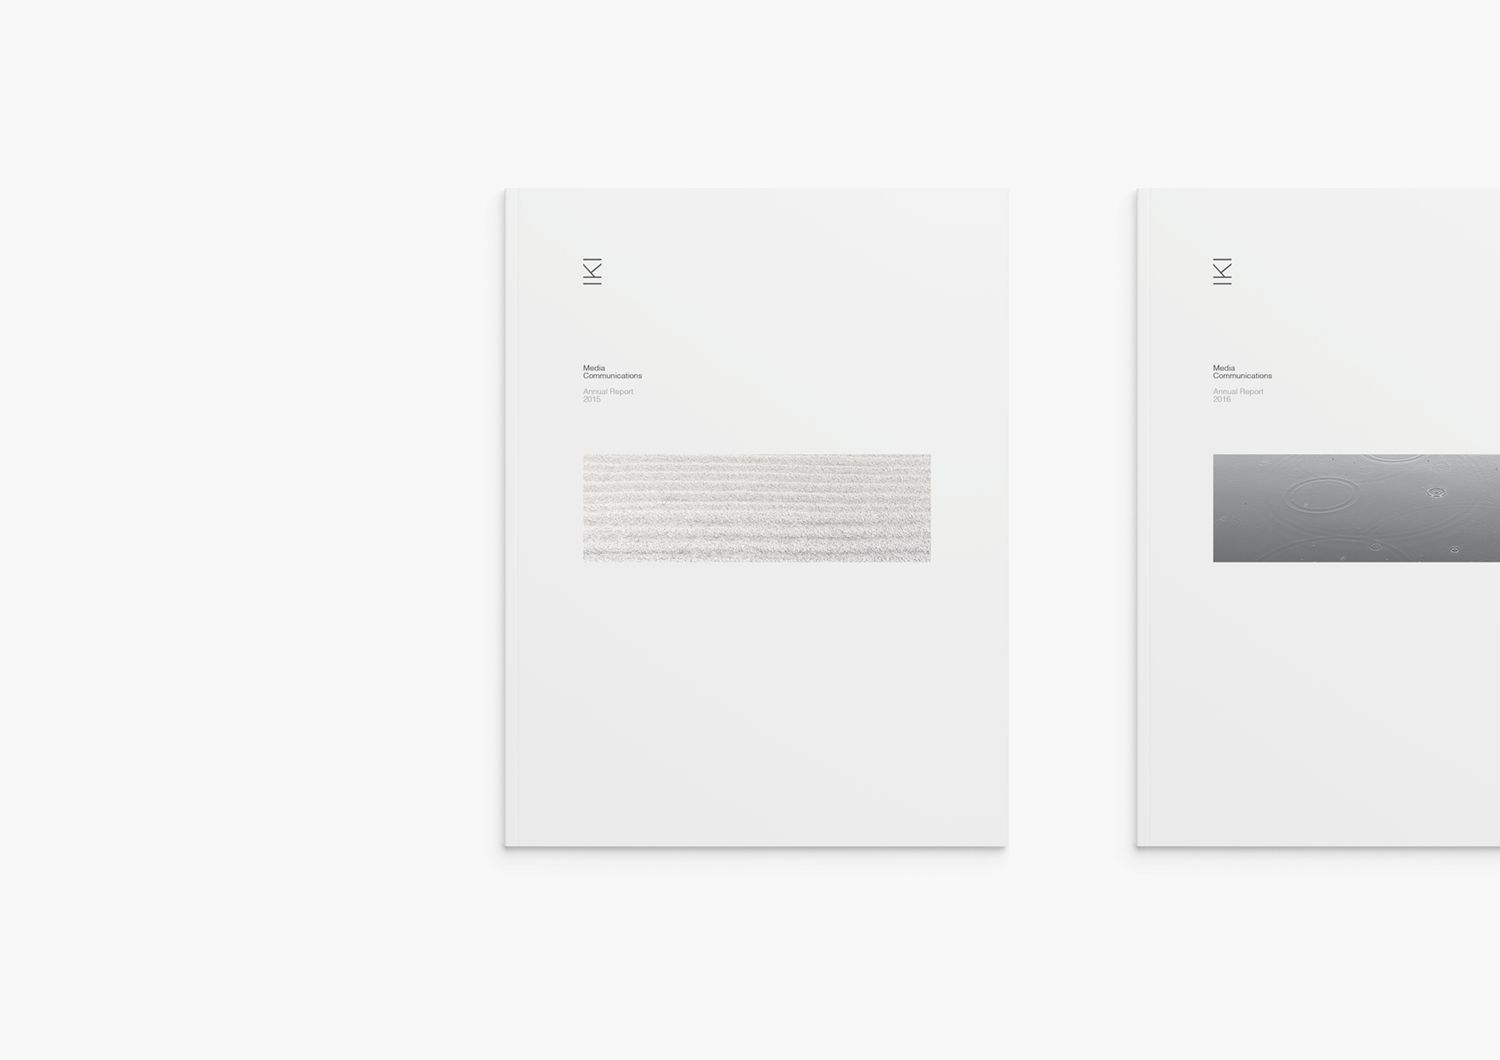 IKI media > visual identity > espluga + associates